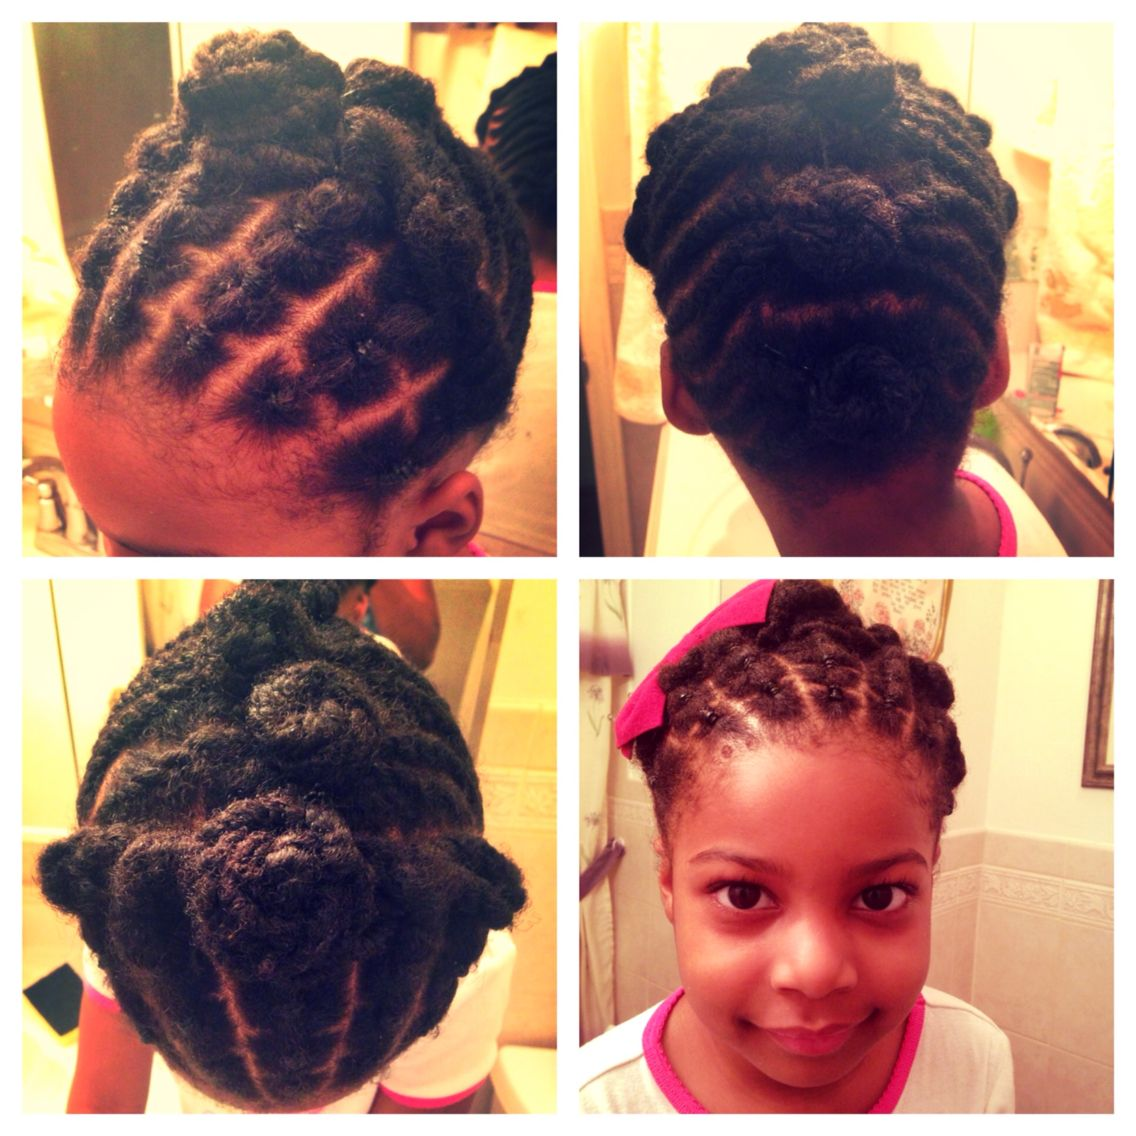 kids natural hair style - flat twists - pin curls - updo